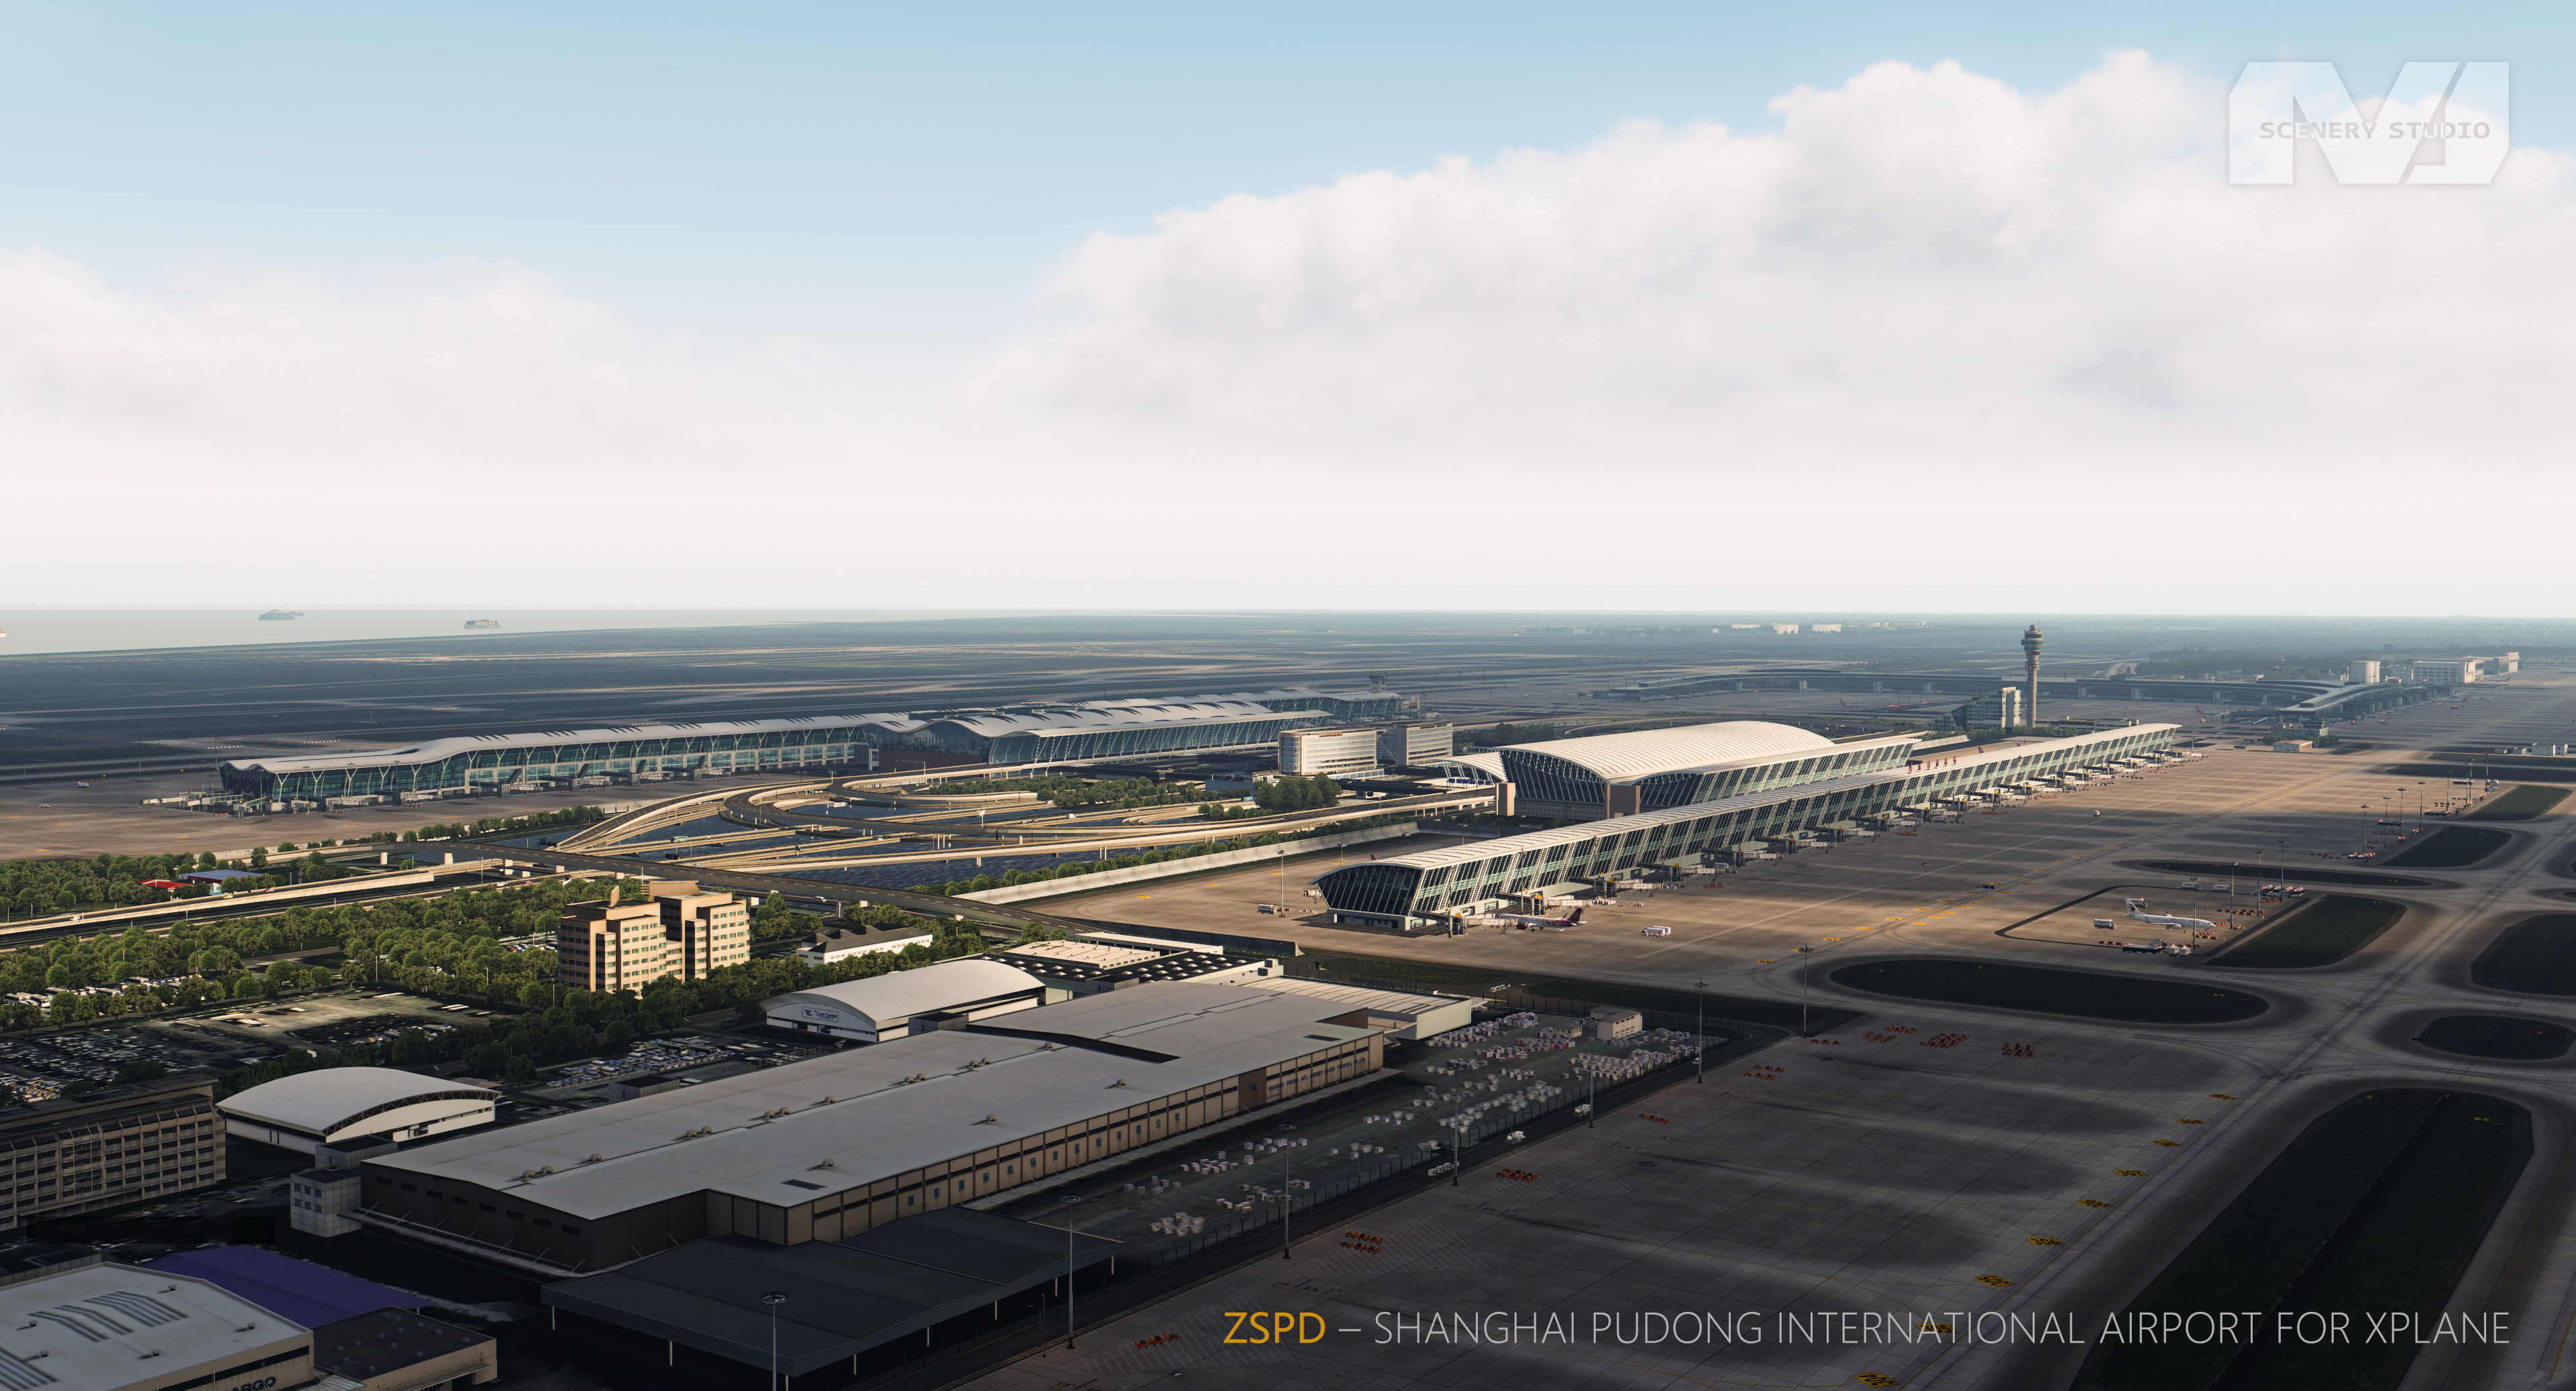 AMJ SCENERY STUDIO - ULTRA CHINA - SHANGHAI PUDONG INTL AIRPORT FOR X-PLANE11